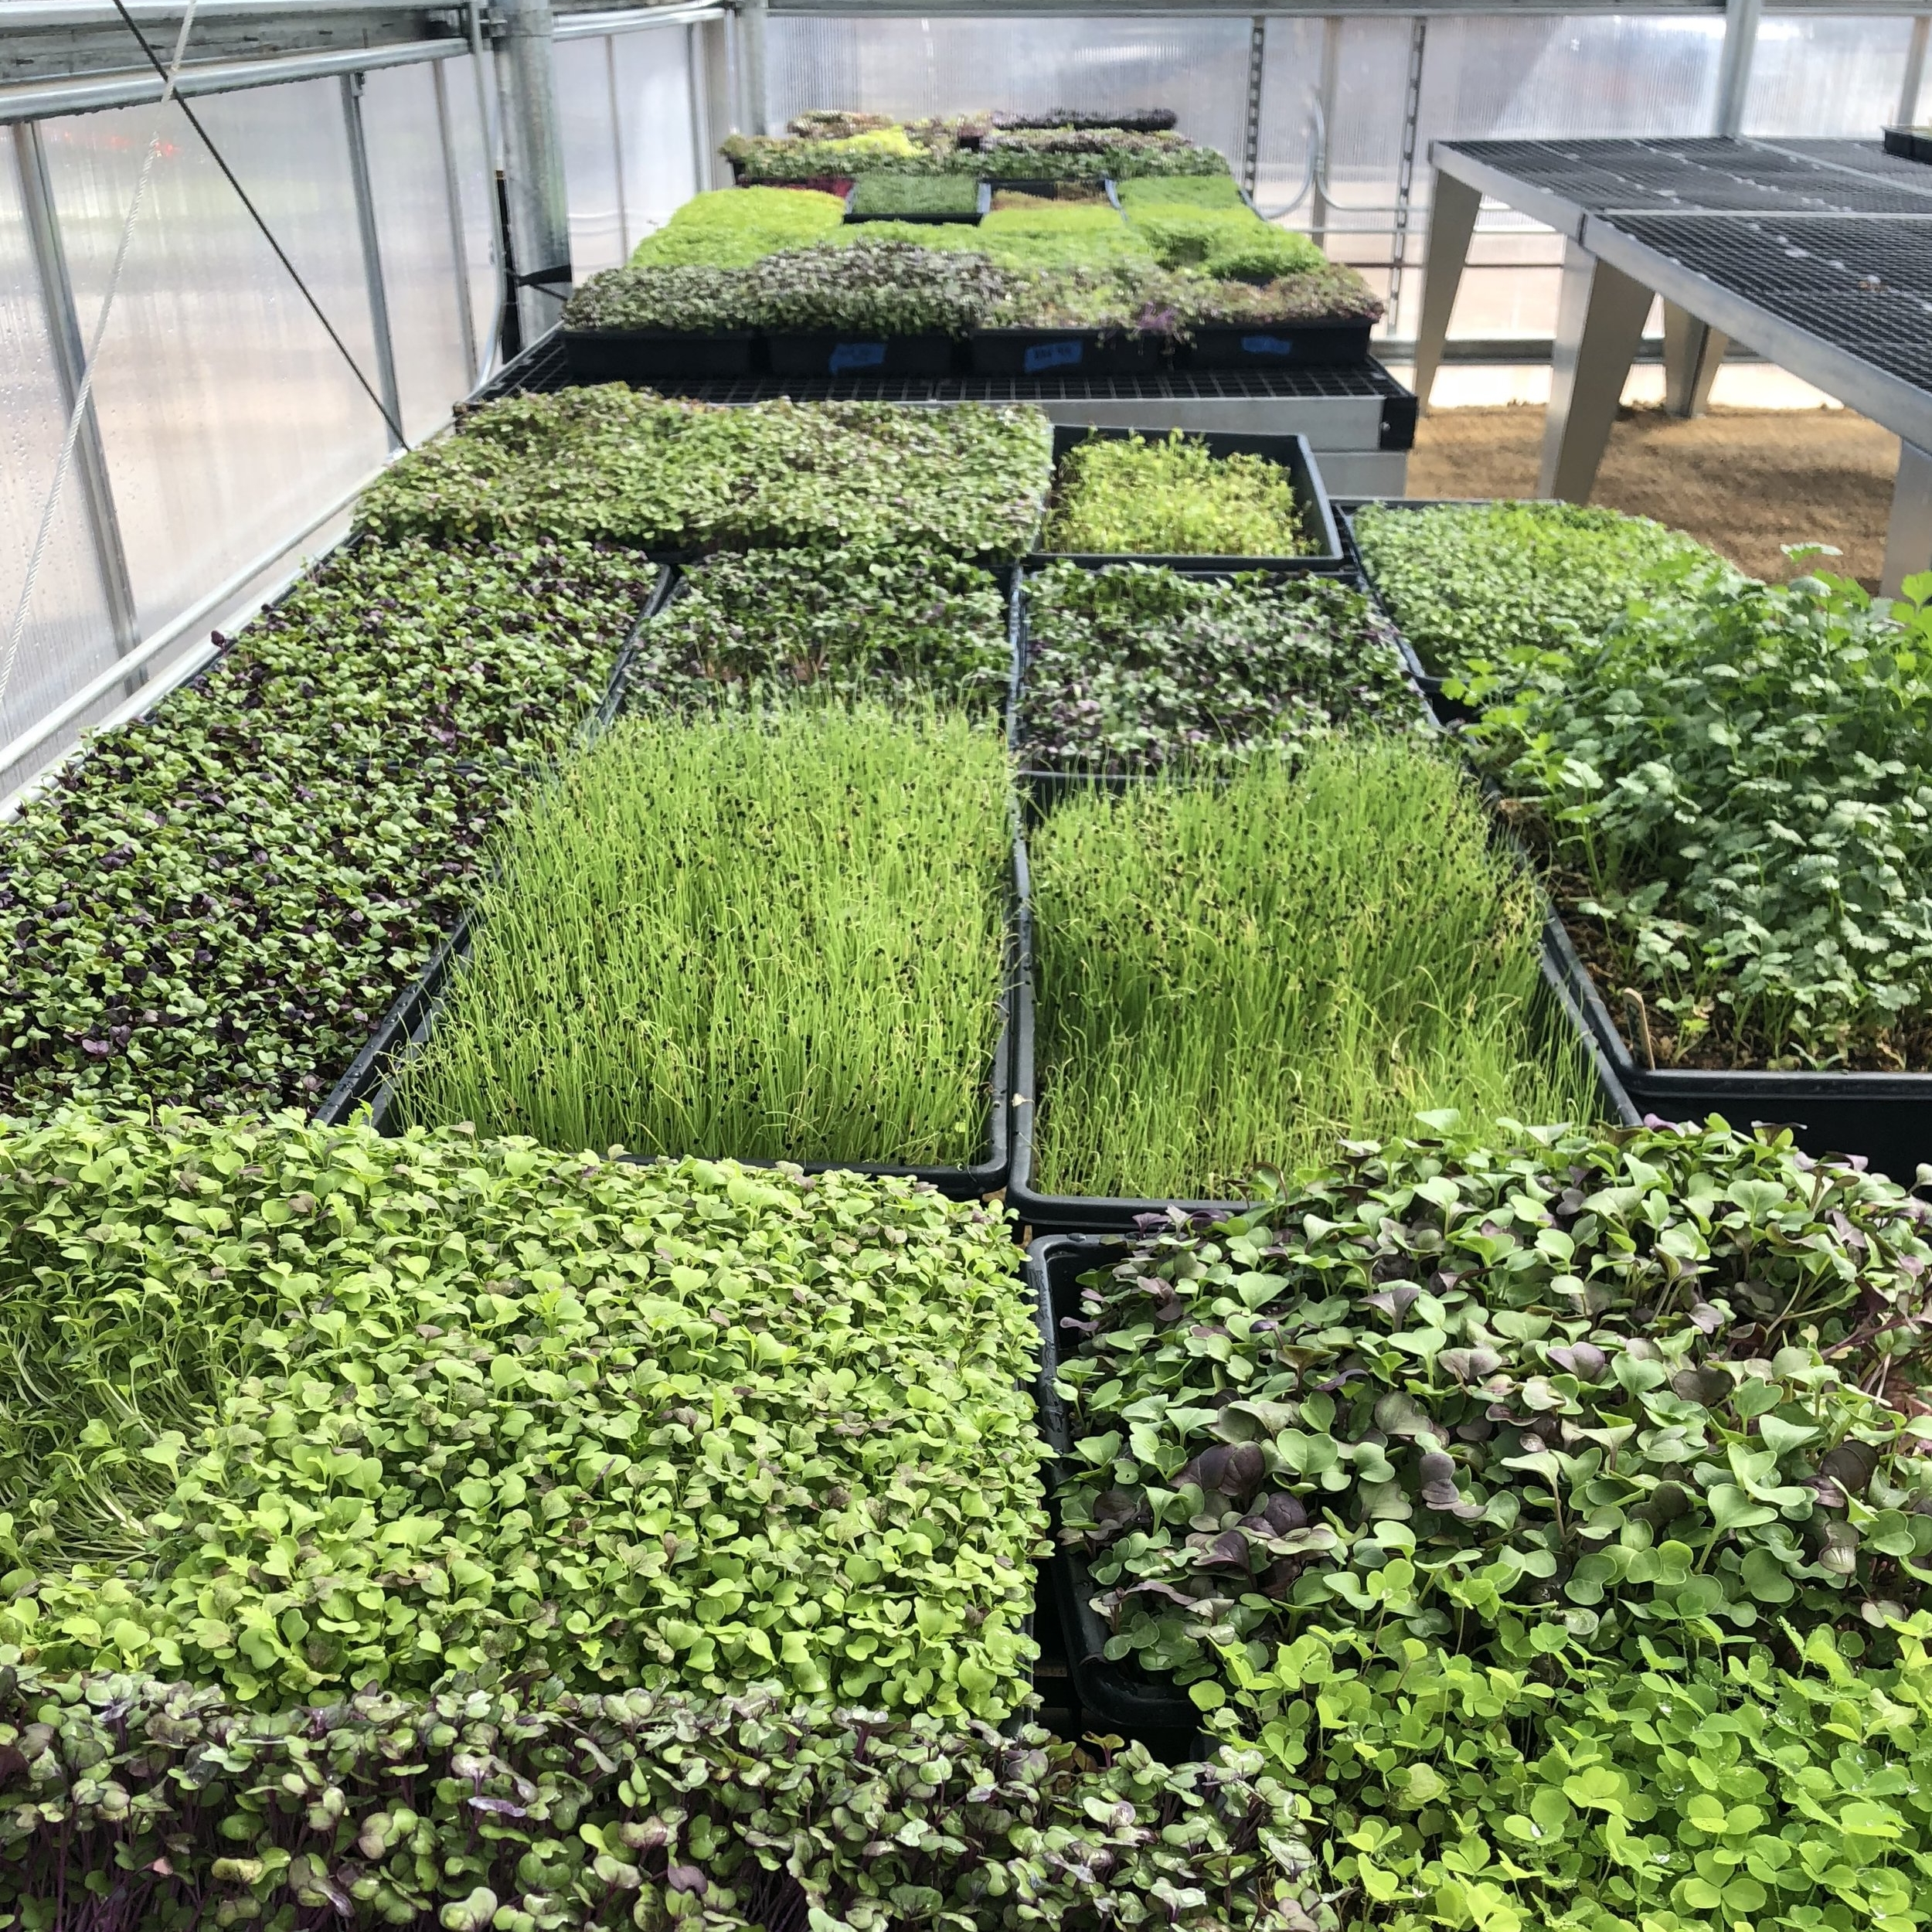 Microgreens and herbs growing in GrowGood's greenhouse.